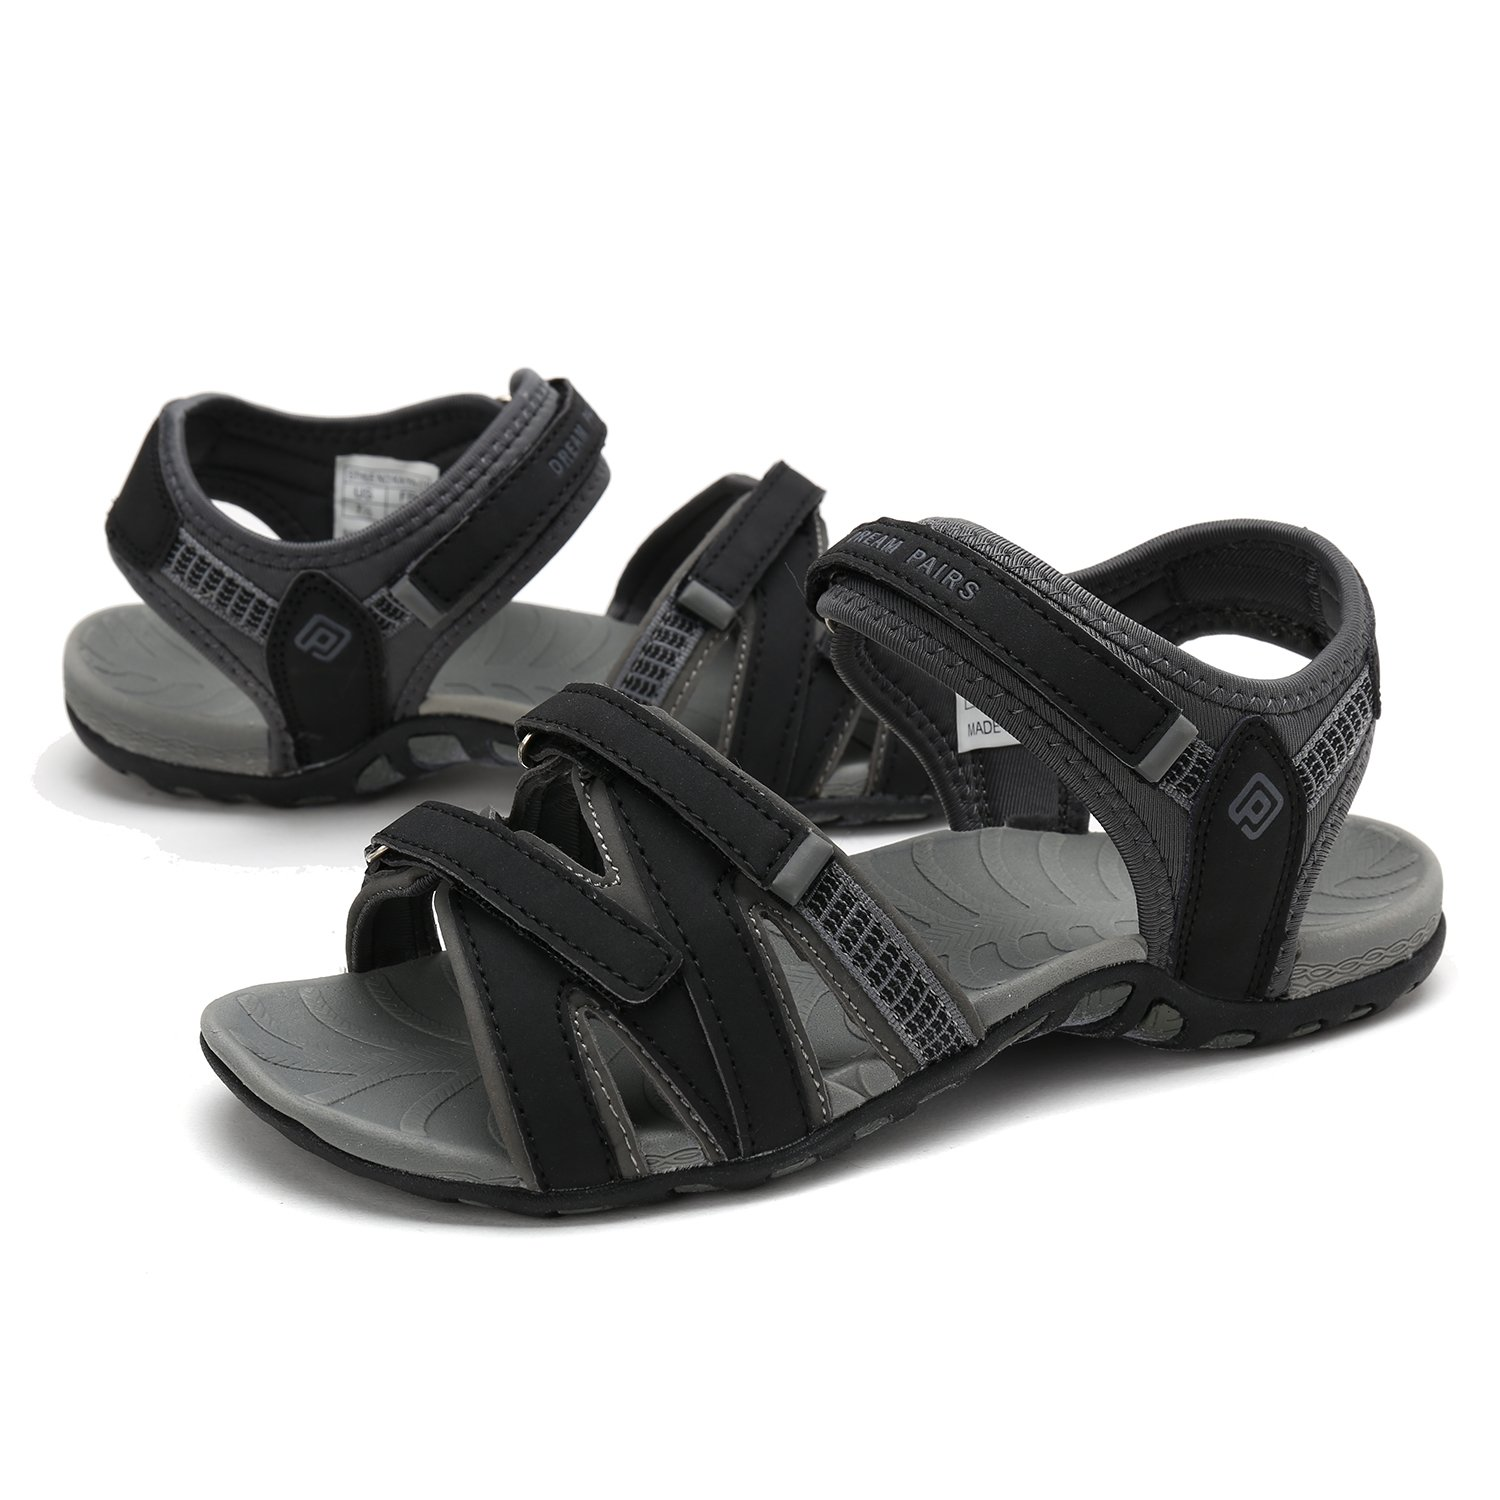 DREAM PAIRS Women's 6.5 160912-W Adventurous Summer Outdoor Sandals B0789MG81C 6.5 Women's B(M) US|Black/Grey 3f3700